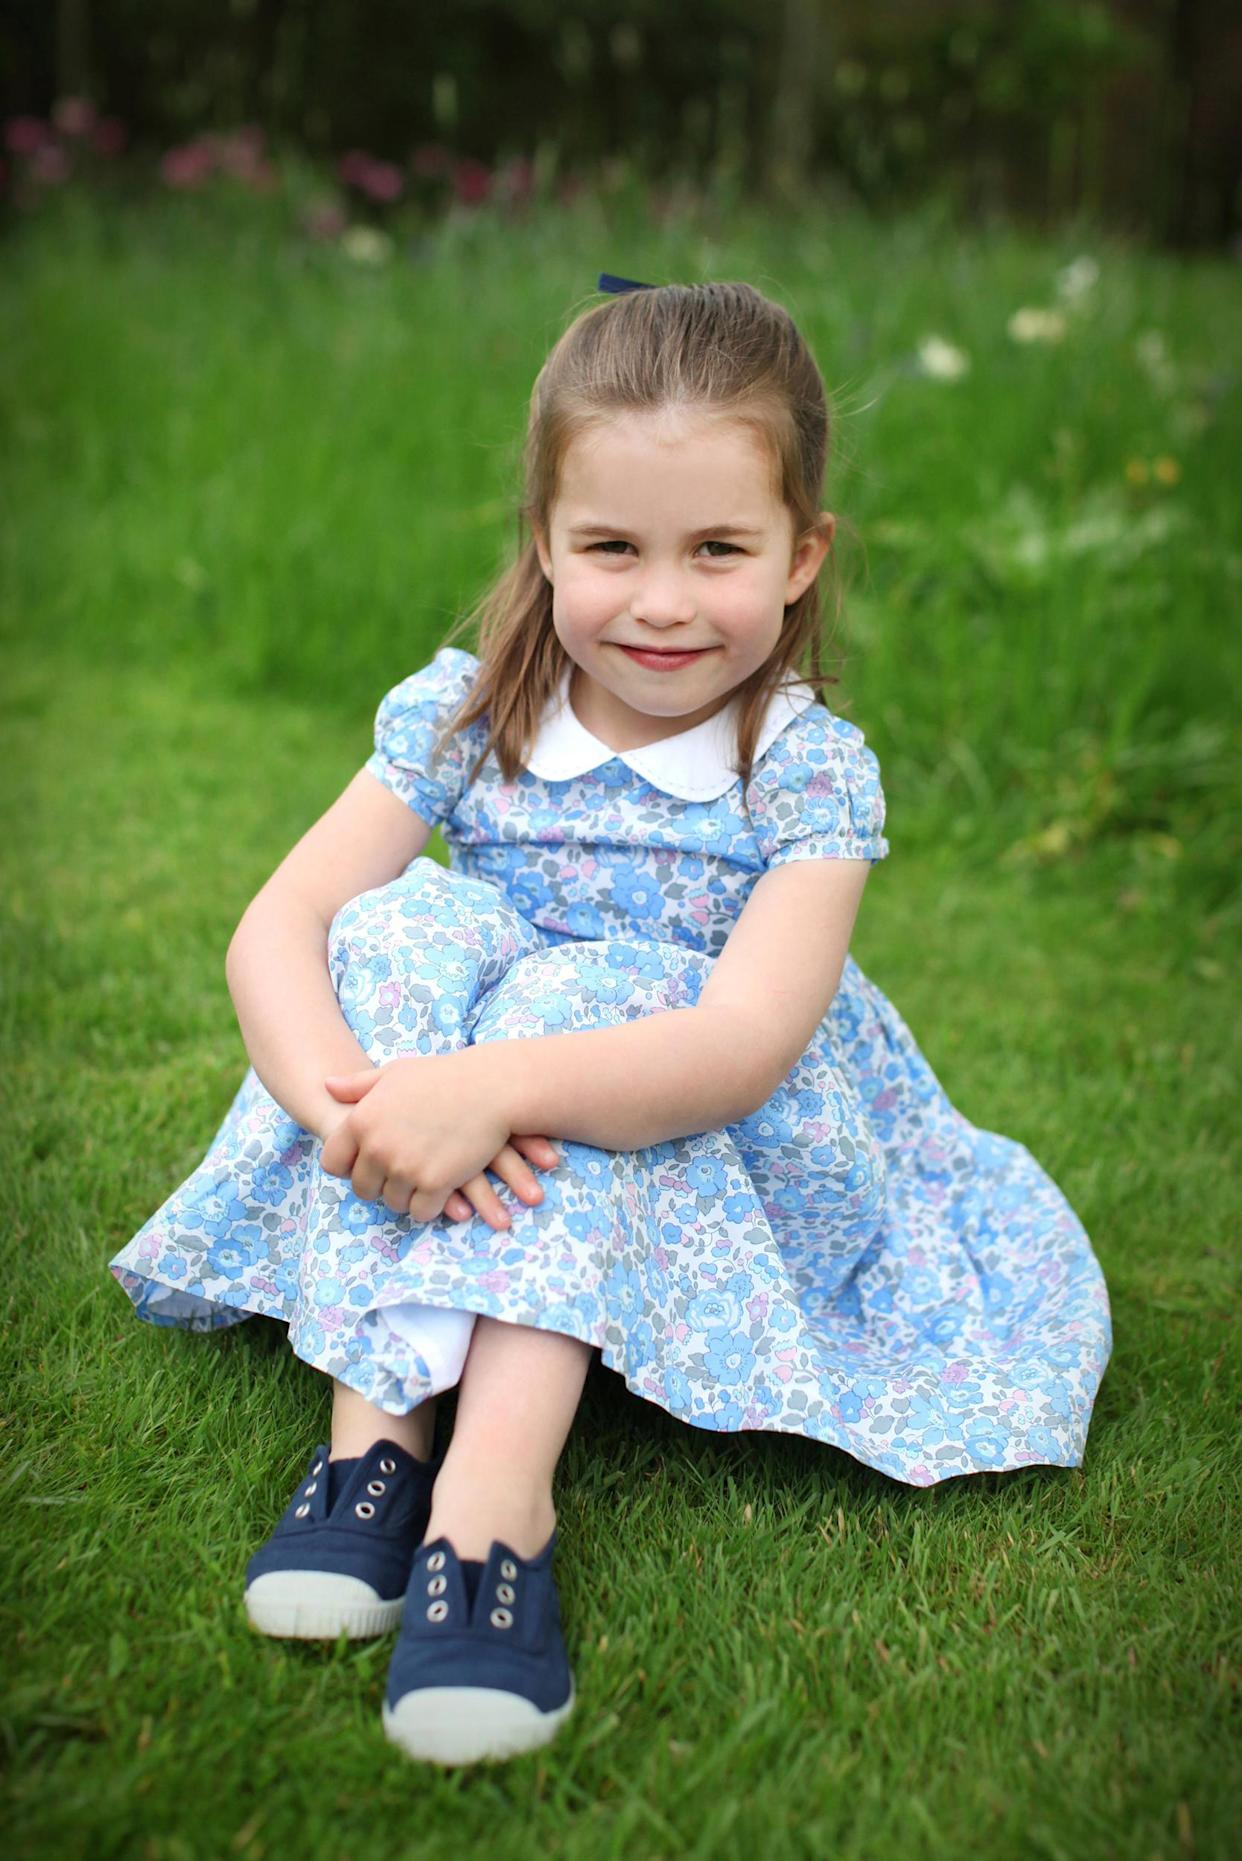 Britain's Princess Charlotte poses ahead of fourth birthday in London (The Duchess of Cambridge / Reuters)